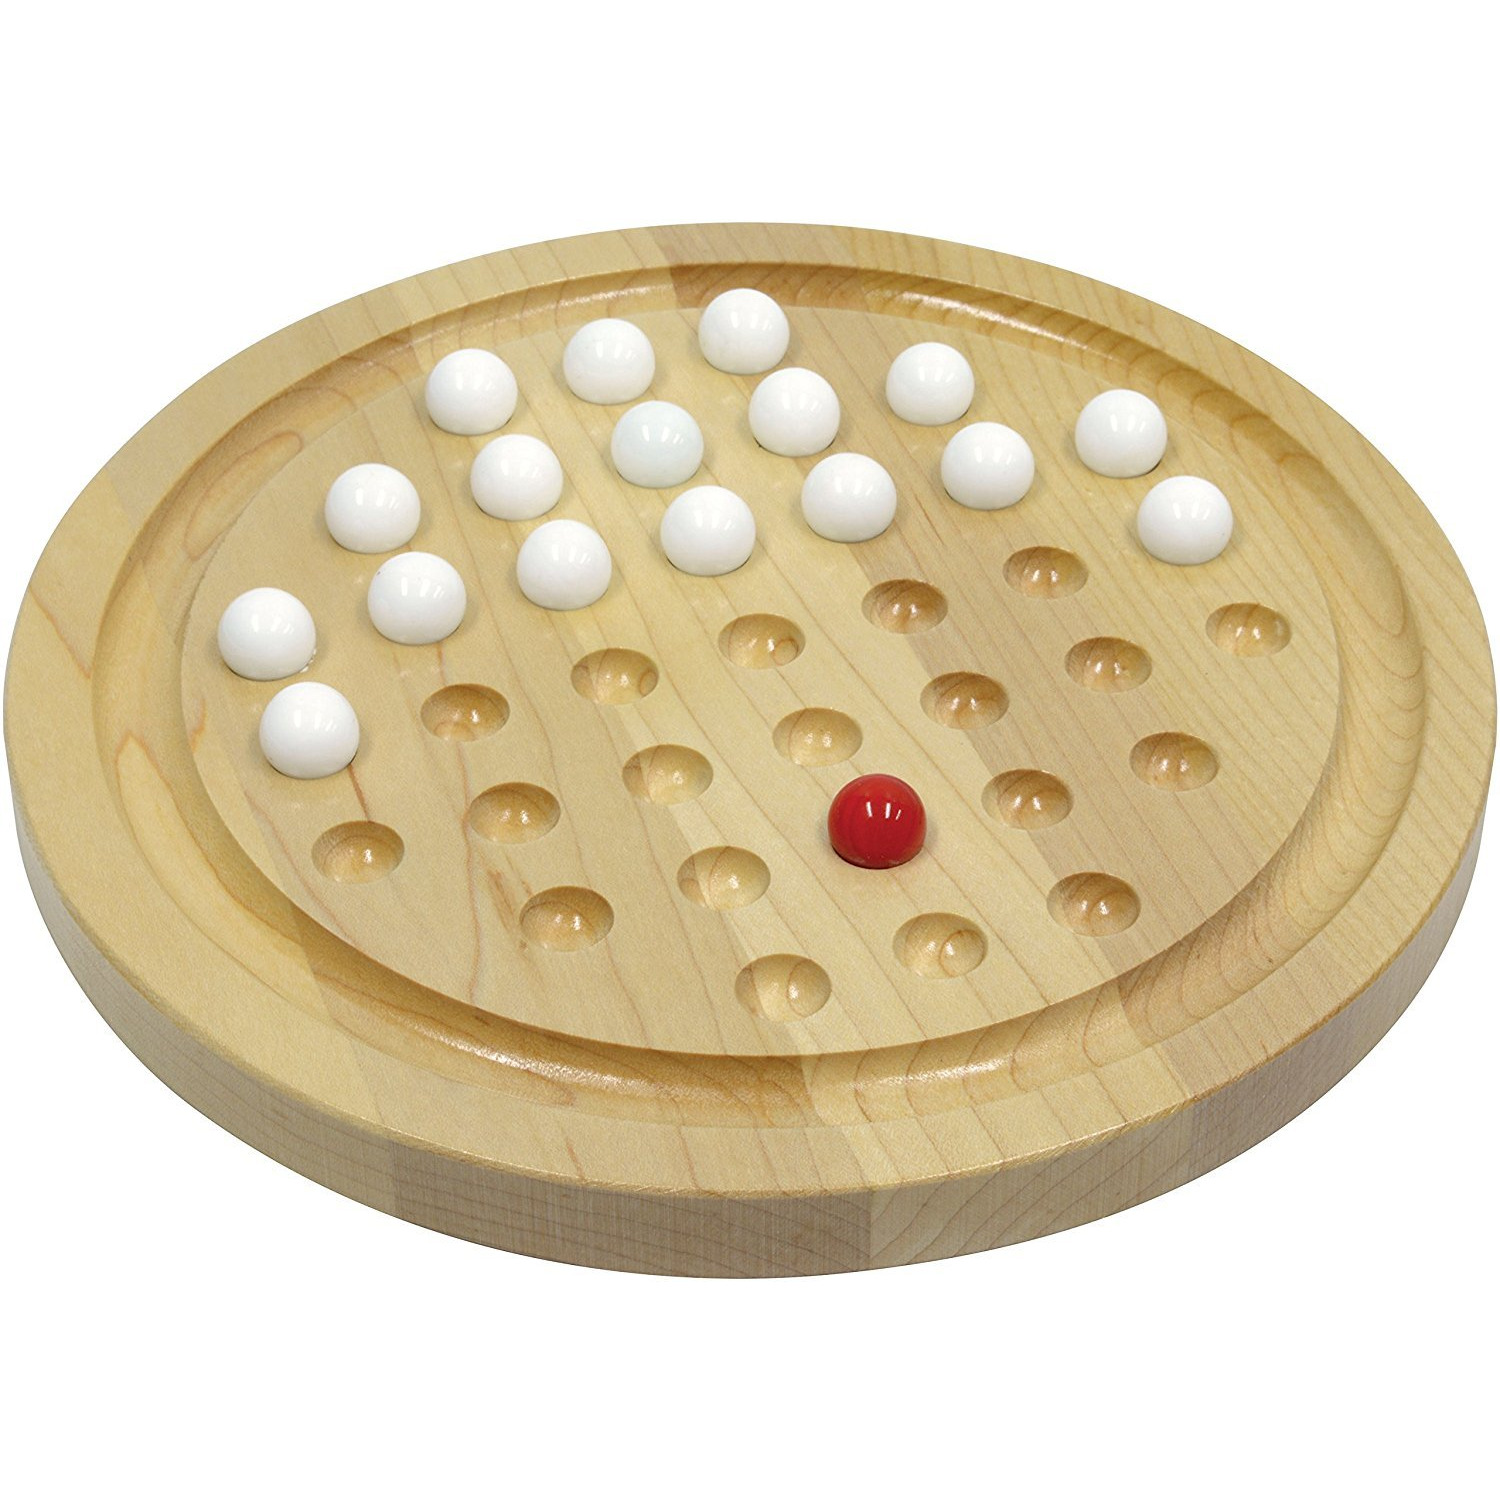 Winmaarc Handmade Games Solitaire Board In Wood With Glass Marbles